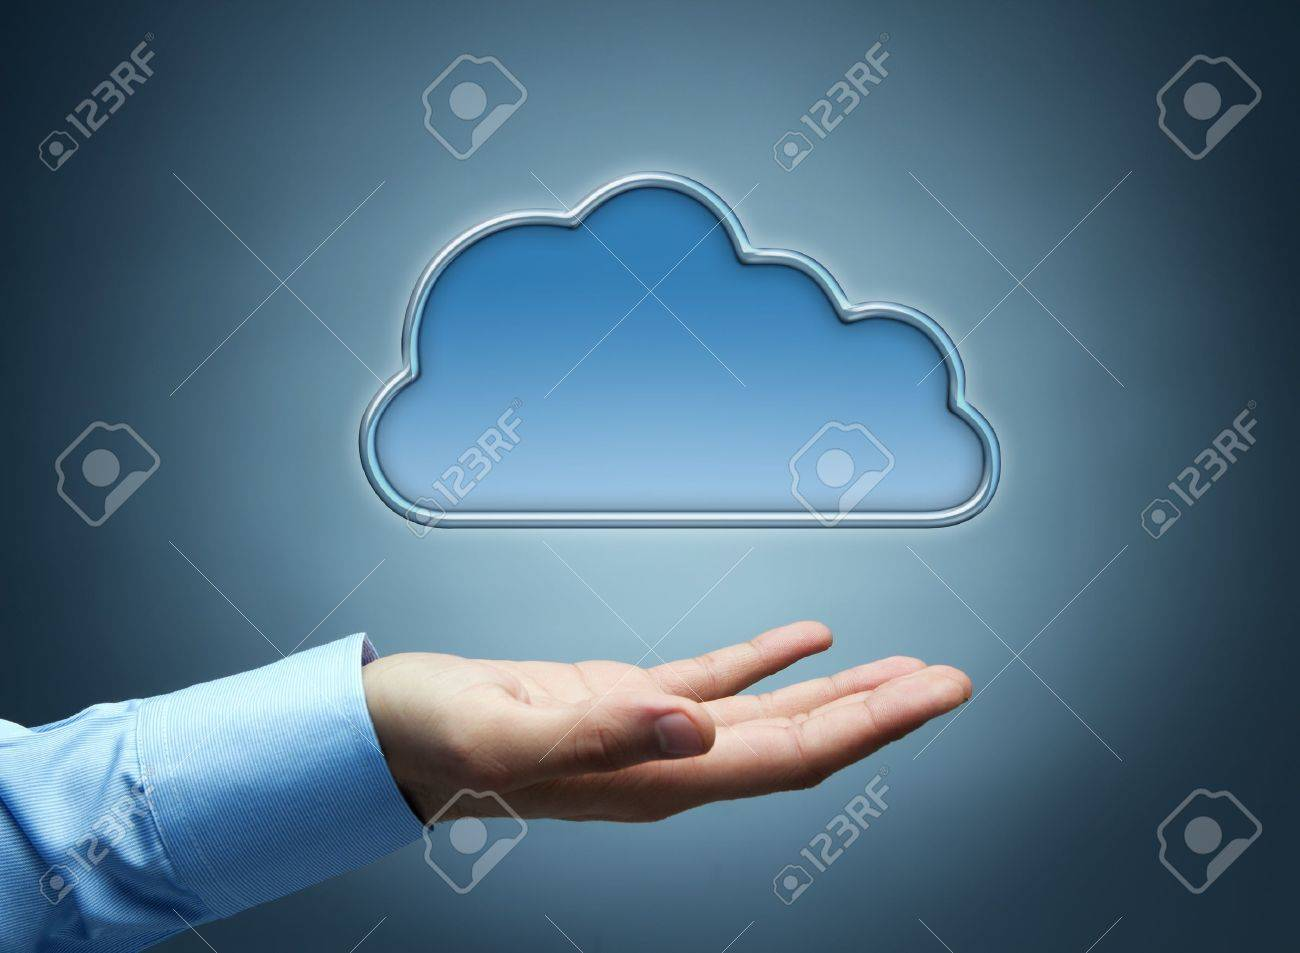 Cloud computing concept with copy space Stock Photo - 11764189